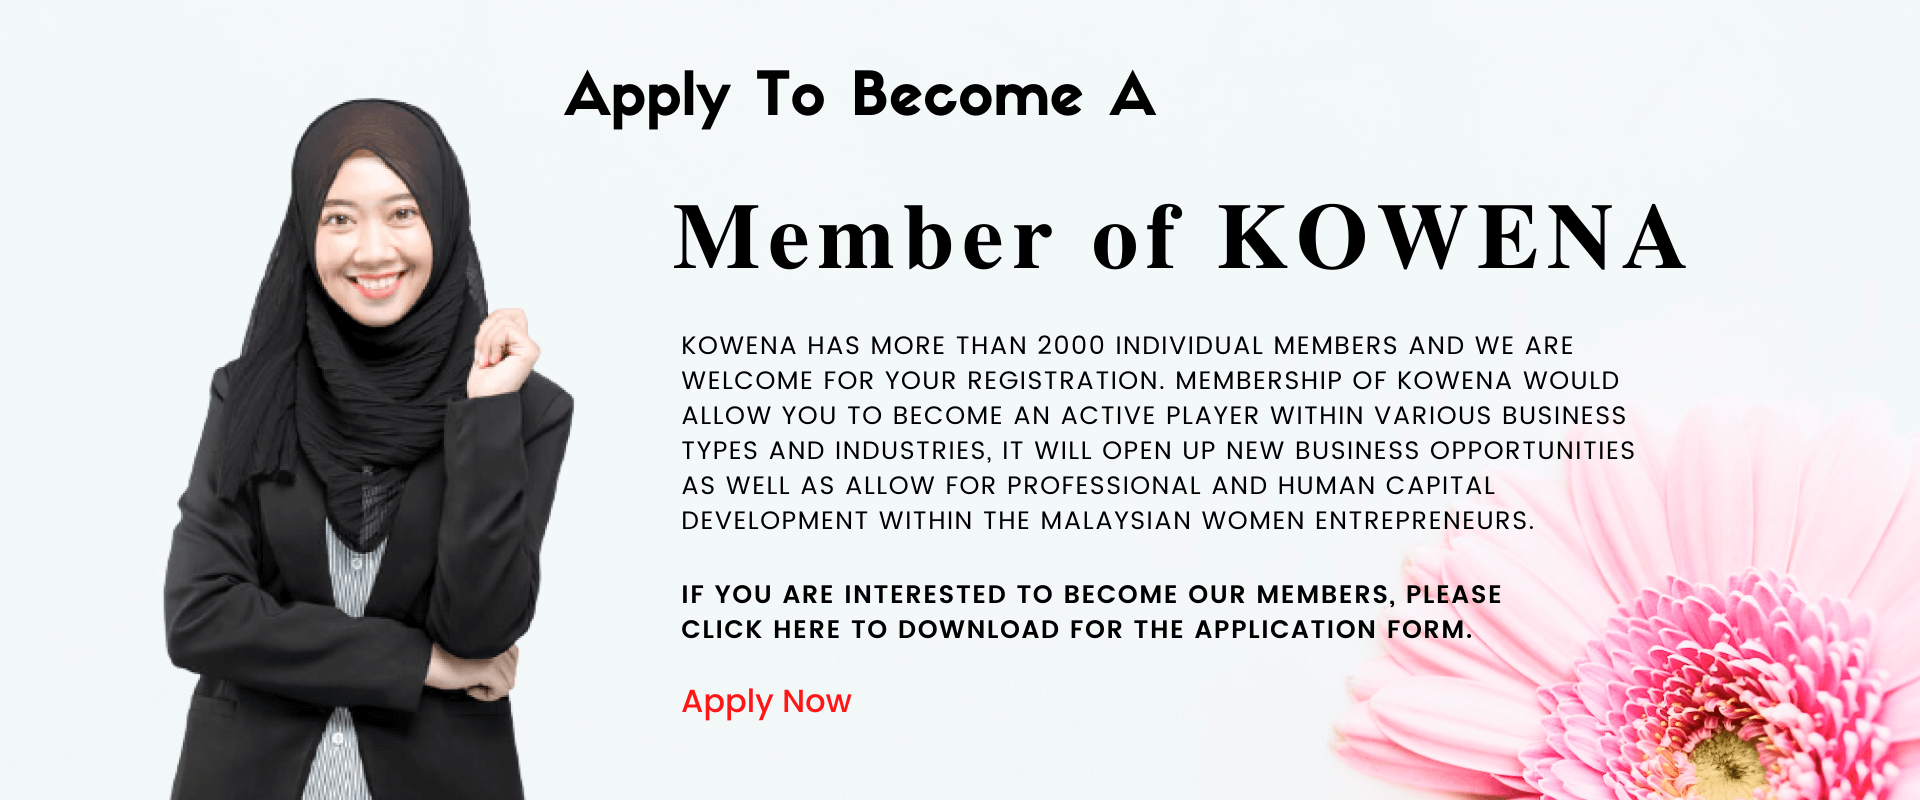 Apply_To-Become-A-Member-of-KOWENA